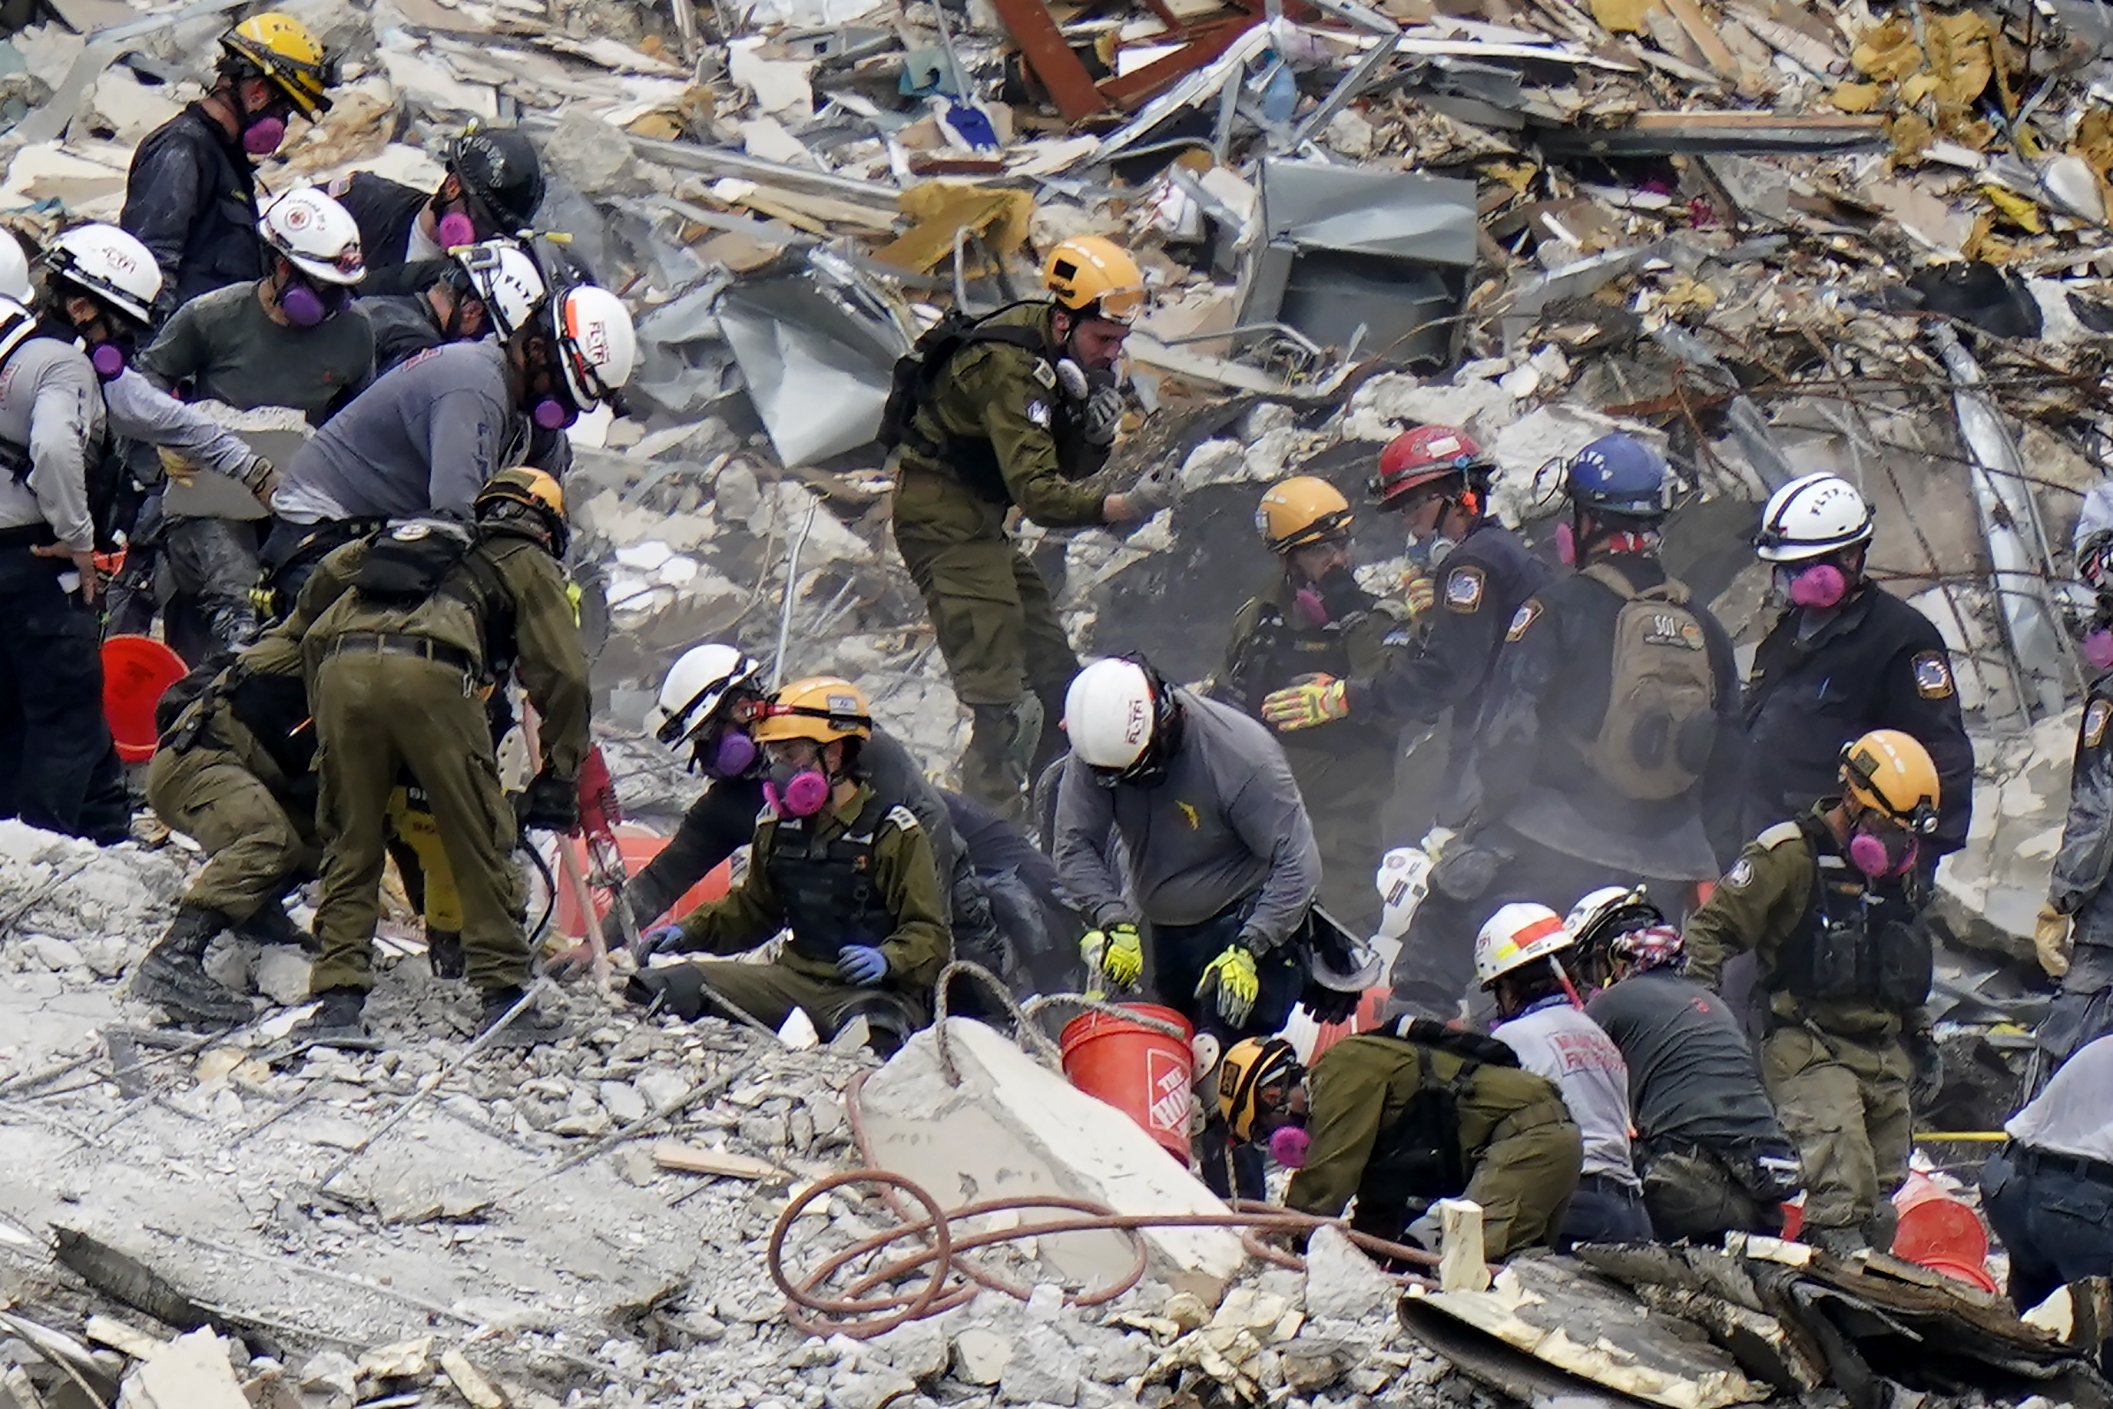 Crews from the United States and Israel work in the rubble Champlain Towers South condo, Tuesday, June 29, 2021, in Surfside, Fla. (AP Photo/Lynne Sladky, File)